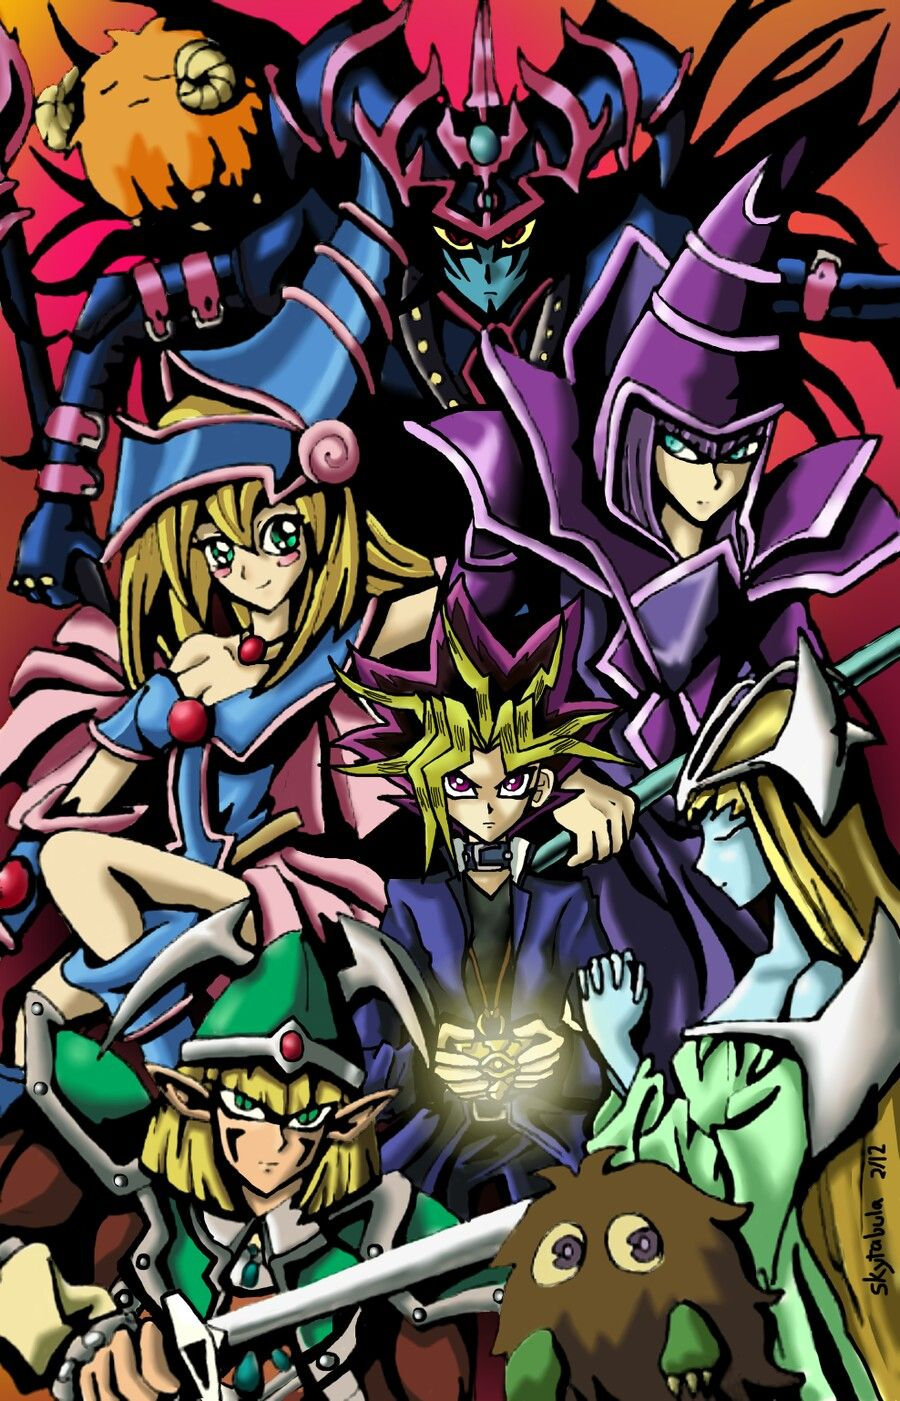 It's here just because it gives me nostalgia Yugioh